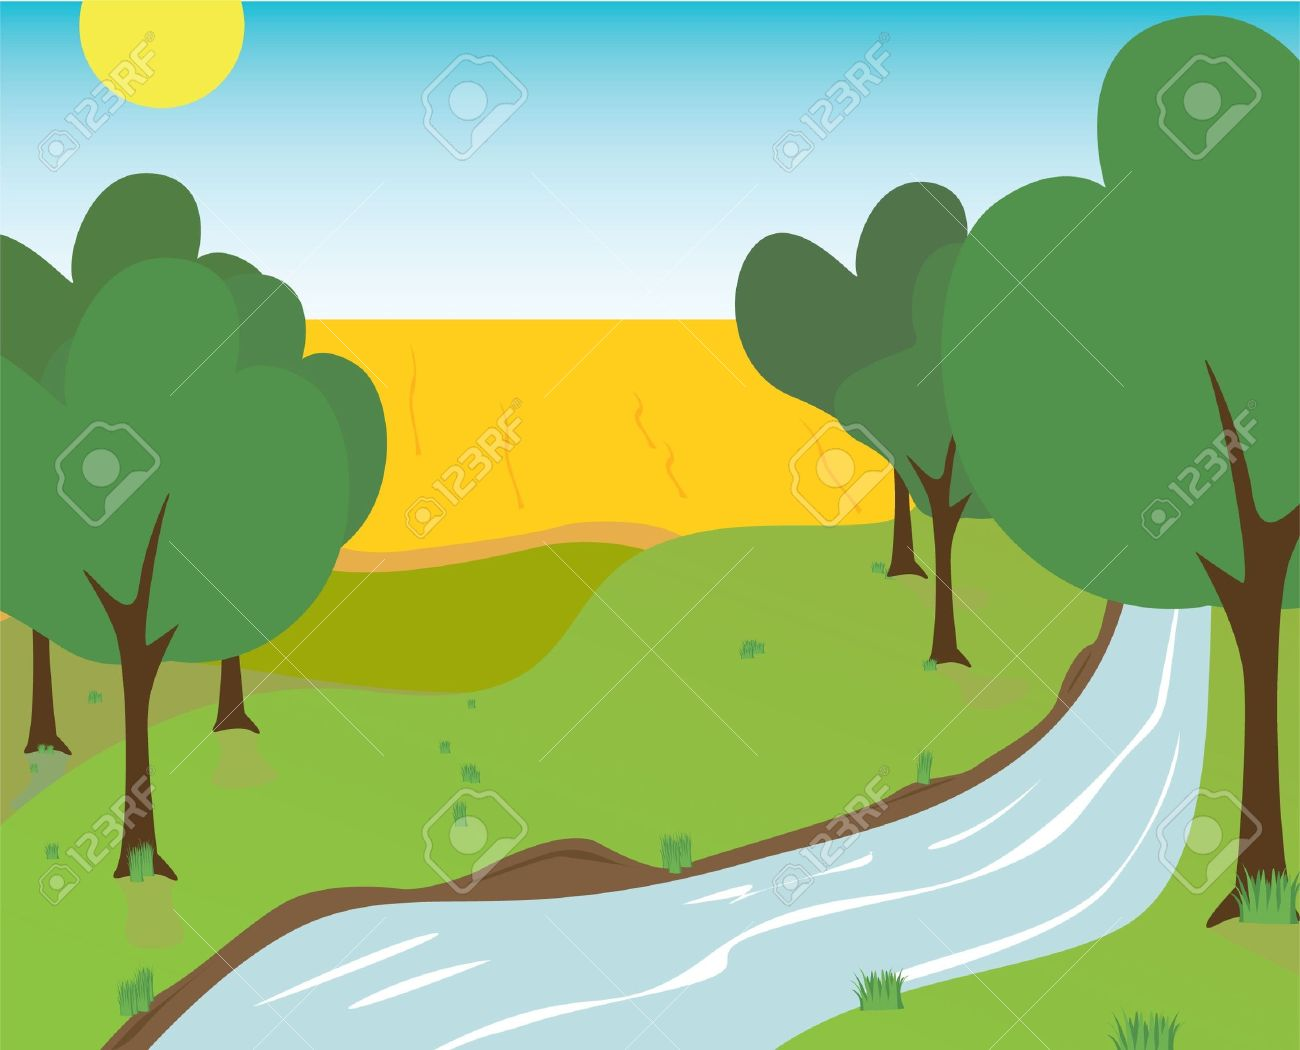 River Landscape clipart river bank #1